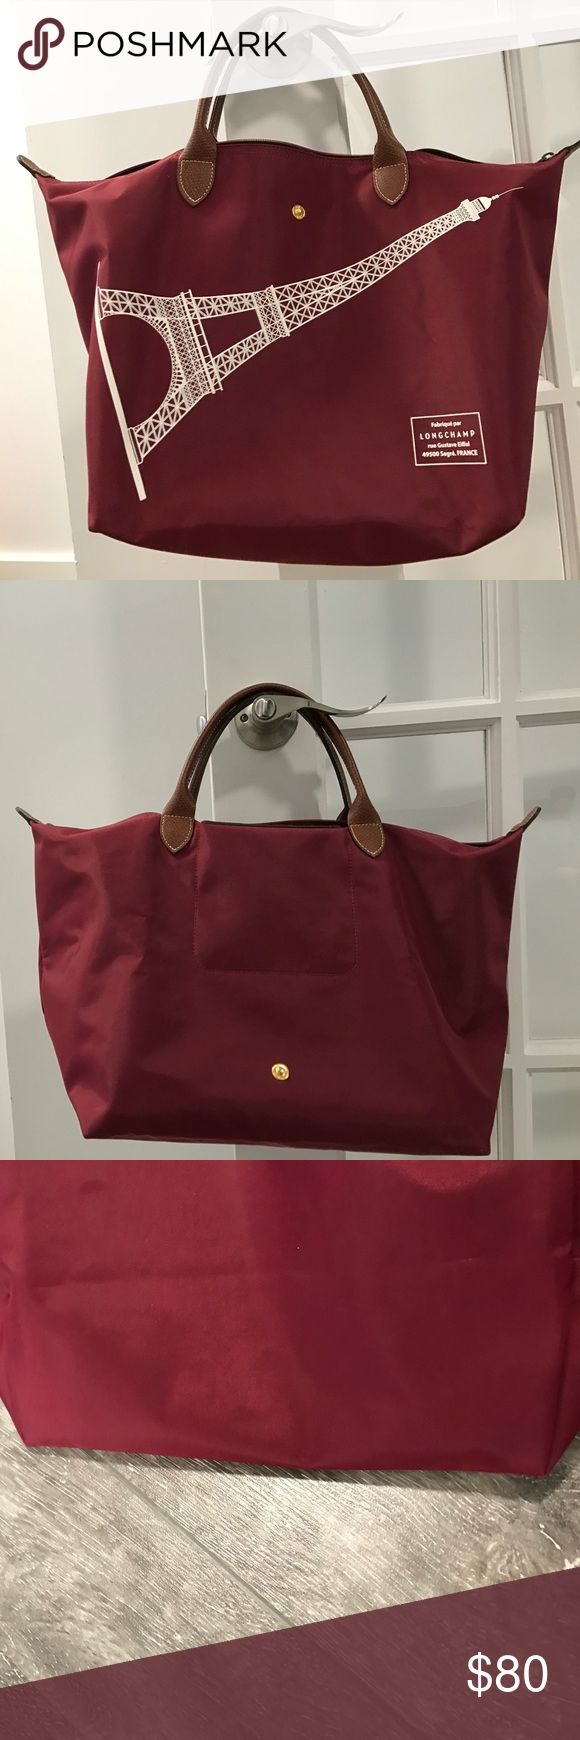 Longchamp Le Pliage Medium Tote in Burgundy color Like New!! Used Once, Exclusive From Paris! Longchamp Bags Totes